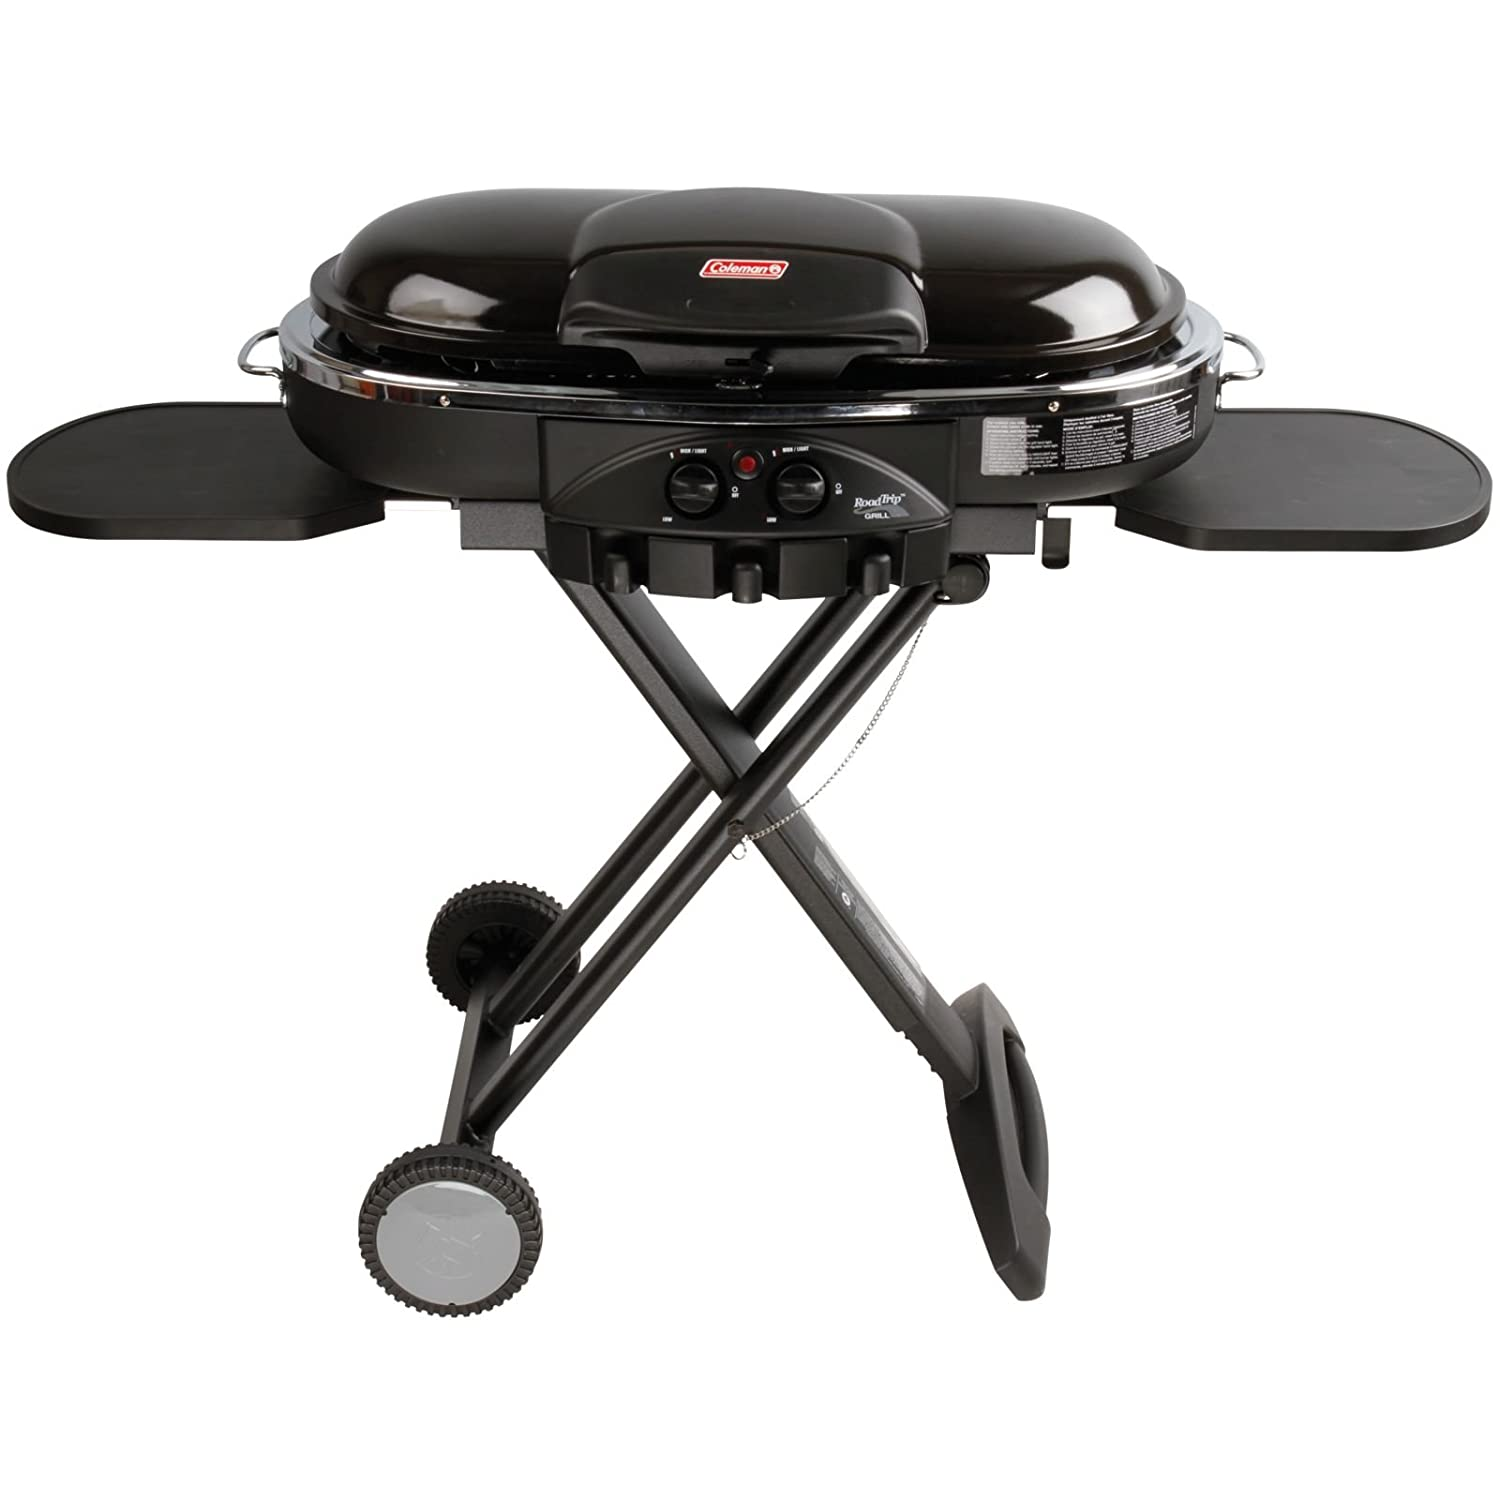 The Most Popular Grills For Campers